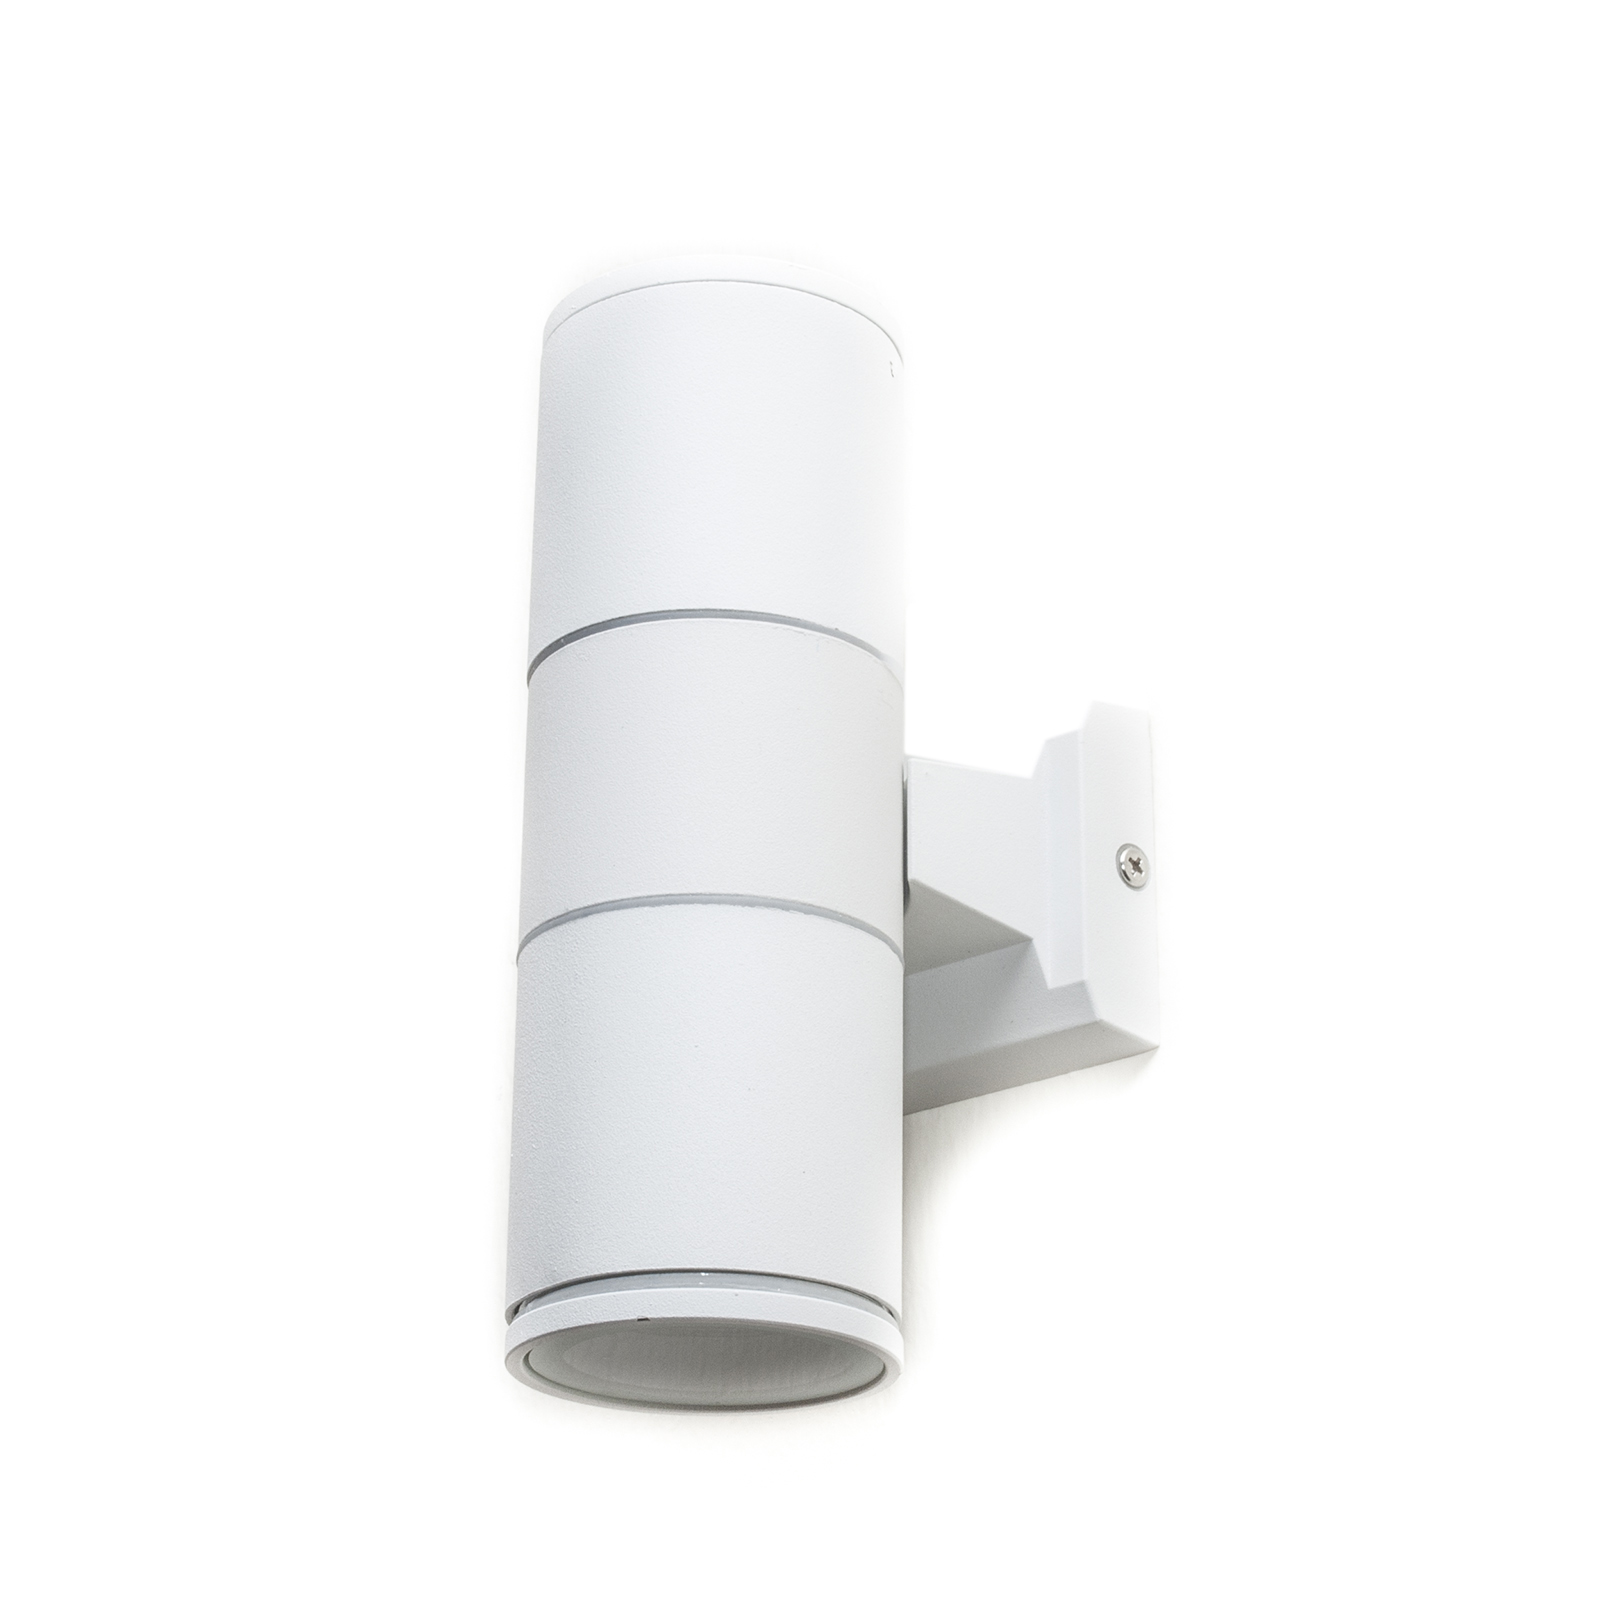 Applique lampada led up and down 14w 160 gradi IP55 esterno doppio fascio gu10 w